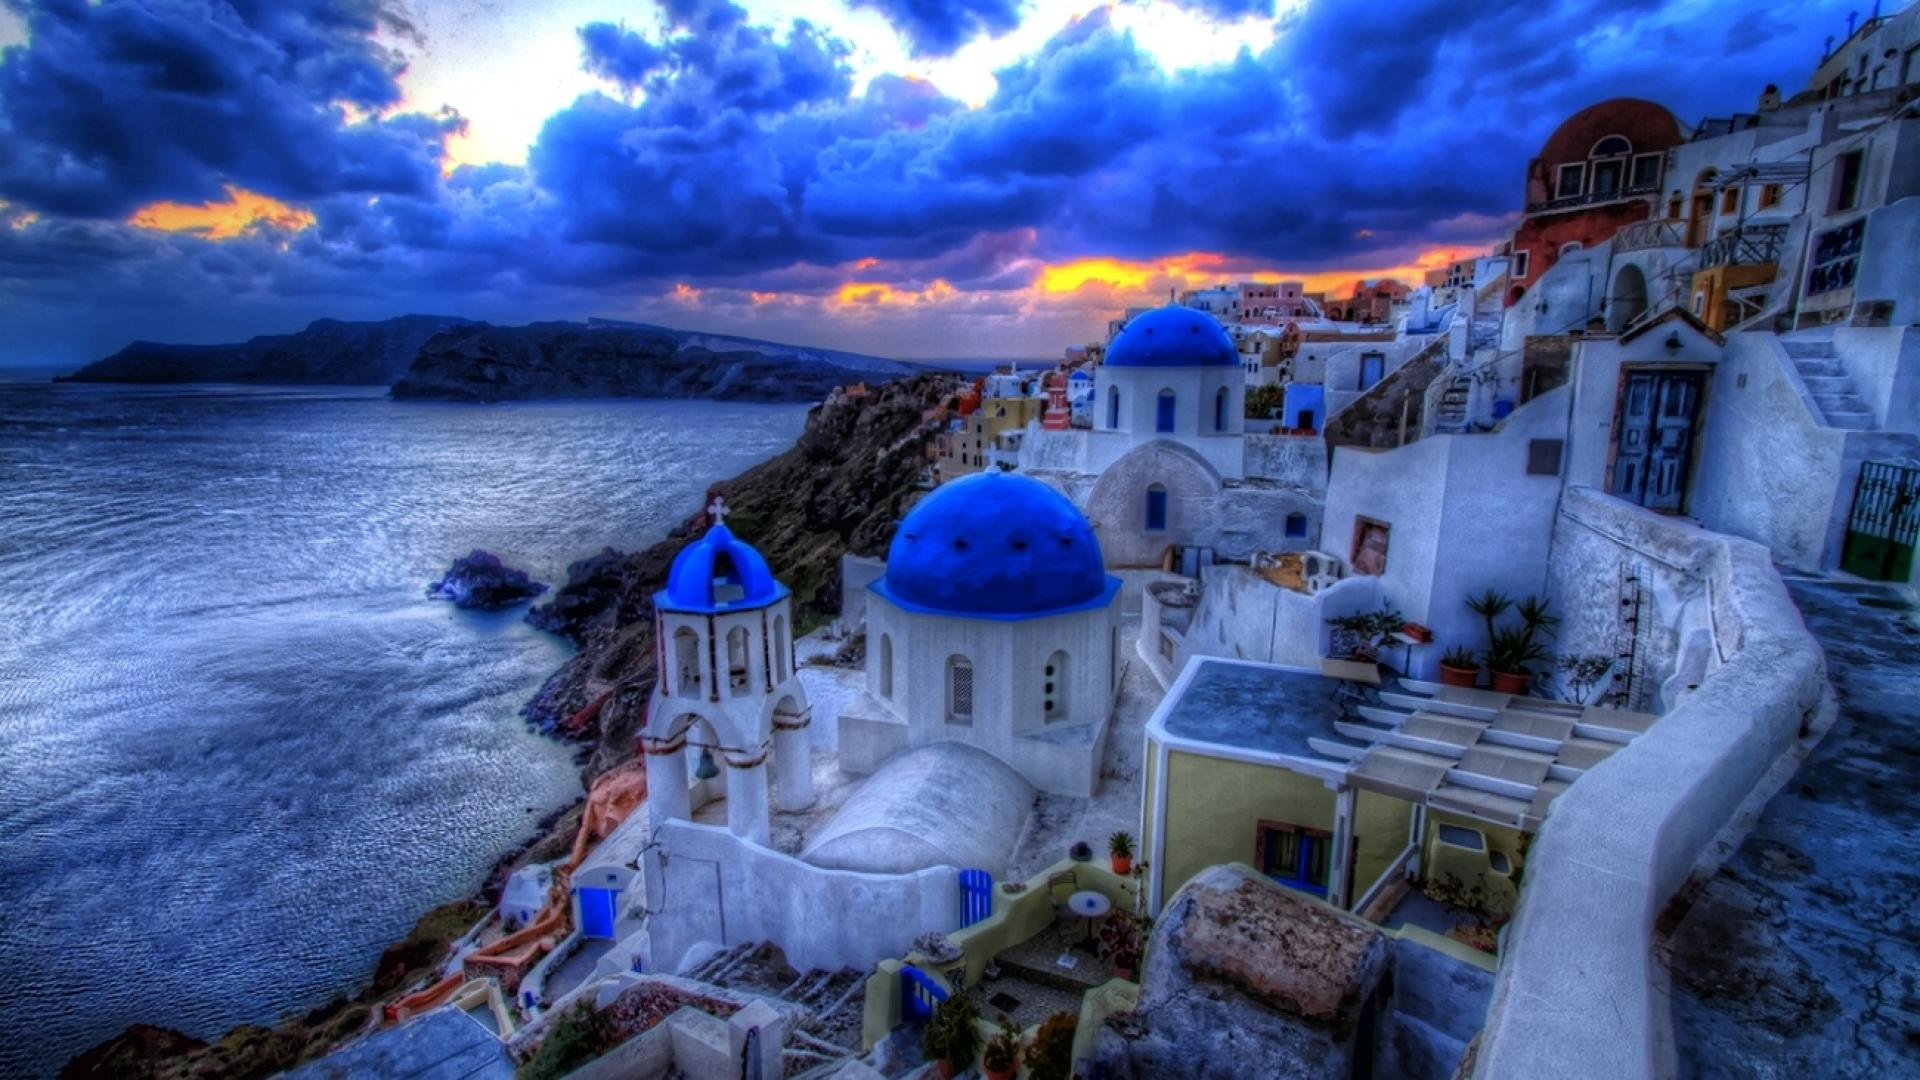 Santorini Wallpapers I4L1867   4USkY 1920x1080